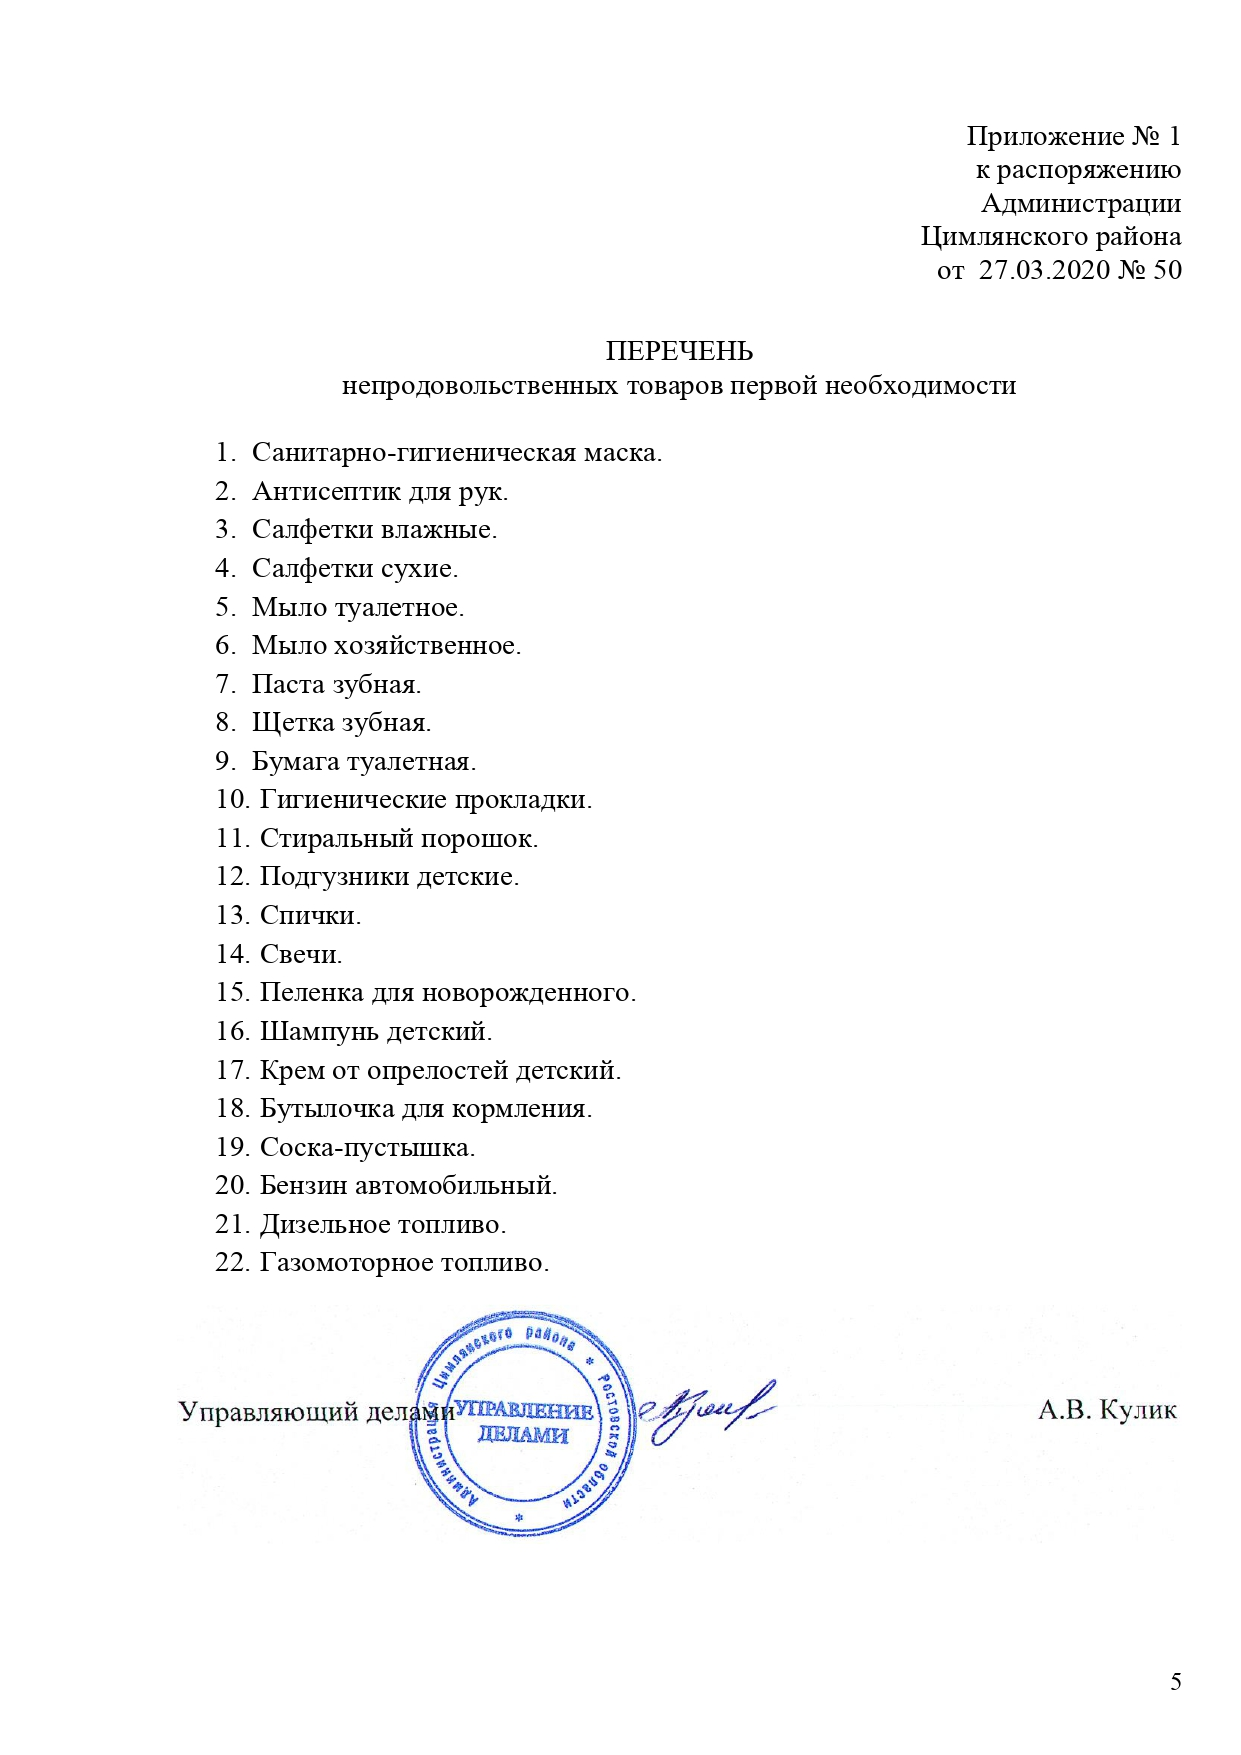 50 р 27.03.2020 page 0005